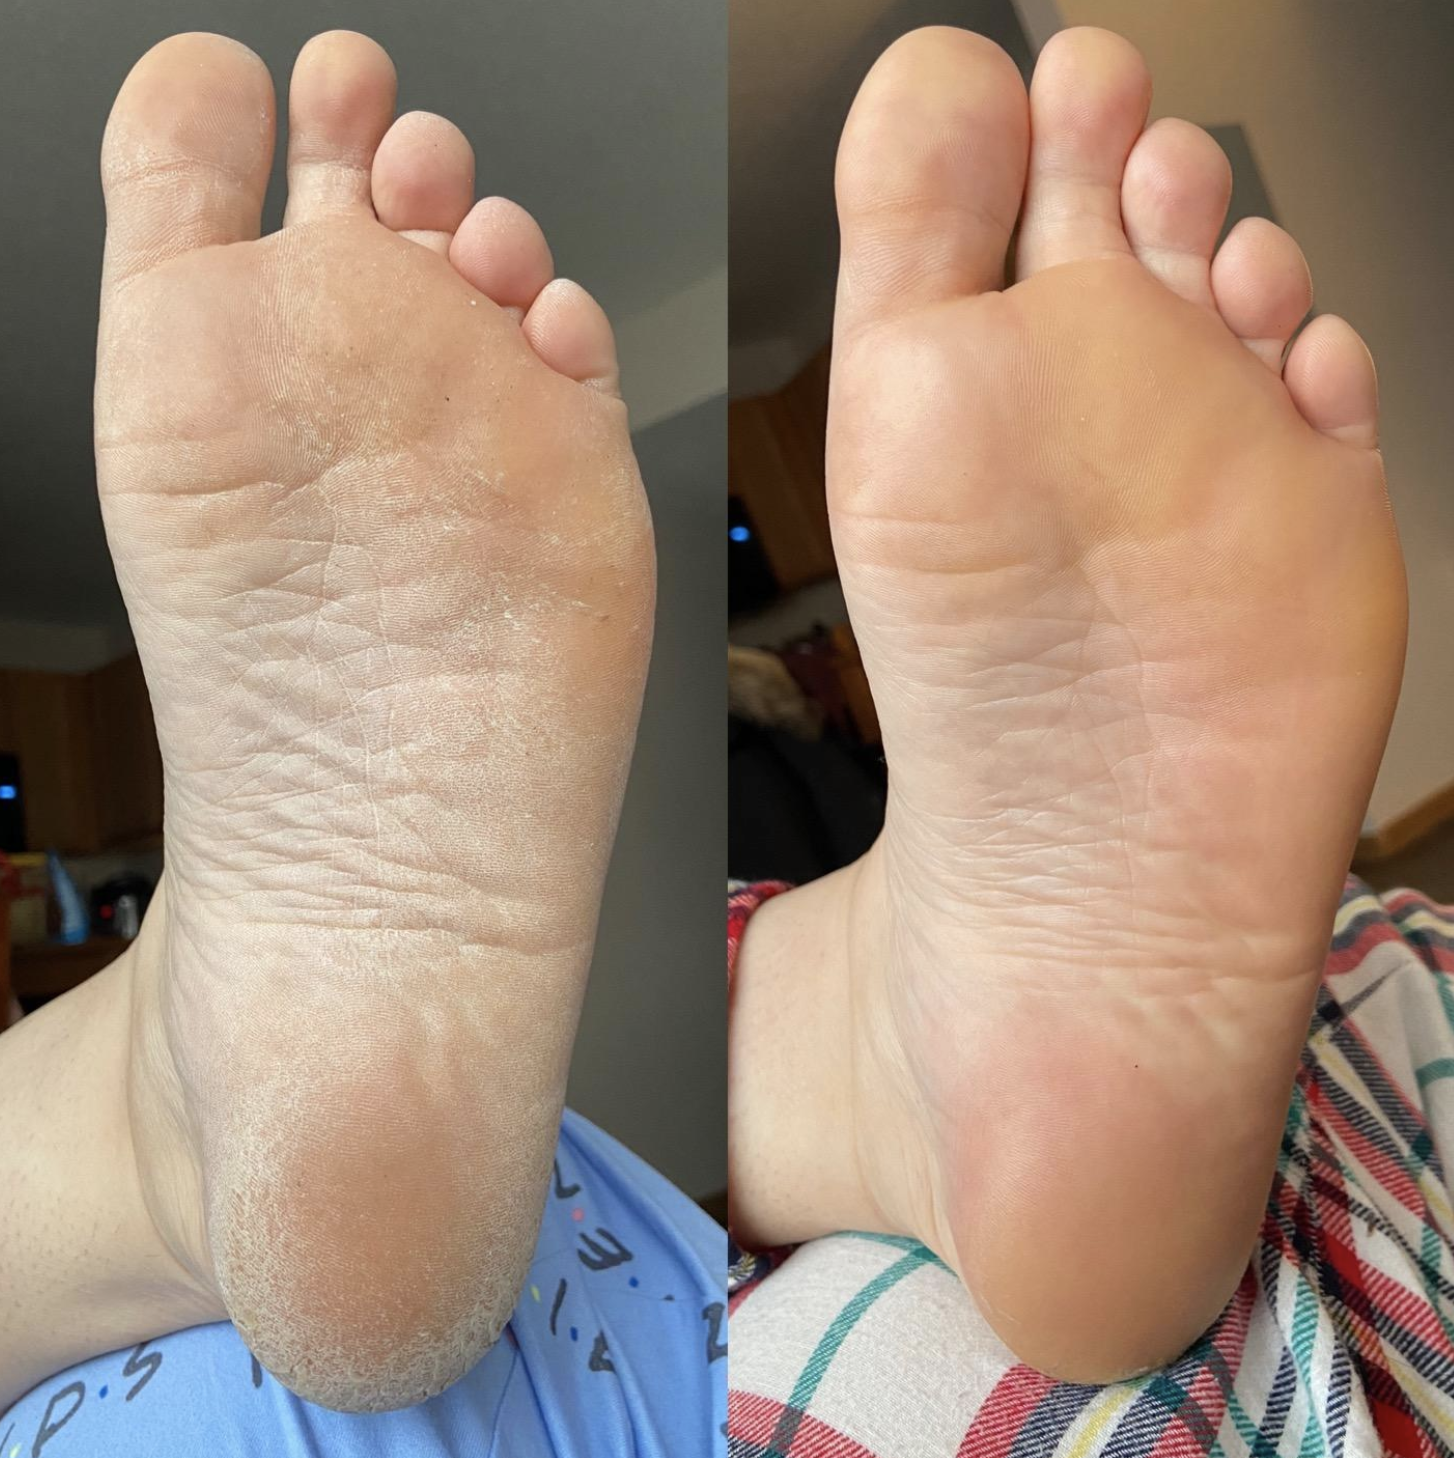 The left side shows a reviewer's foot with calluses all over the bottom of it. The right side shows the same foot after the foot peel and it's completely clear of all calluses.